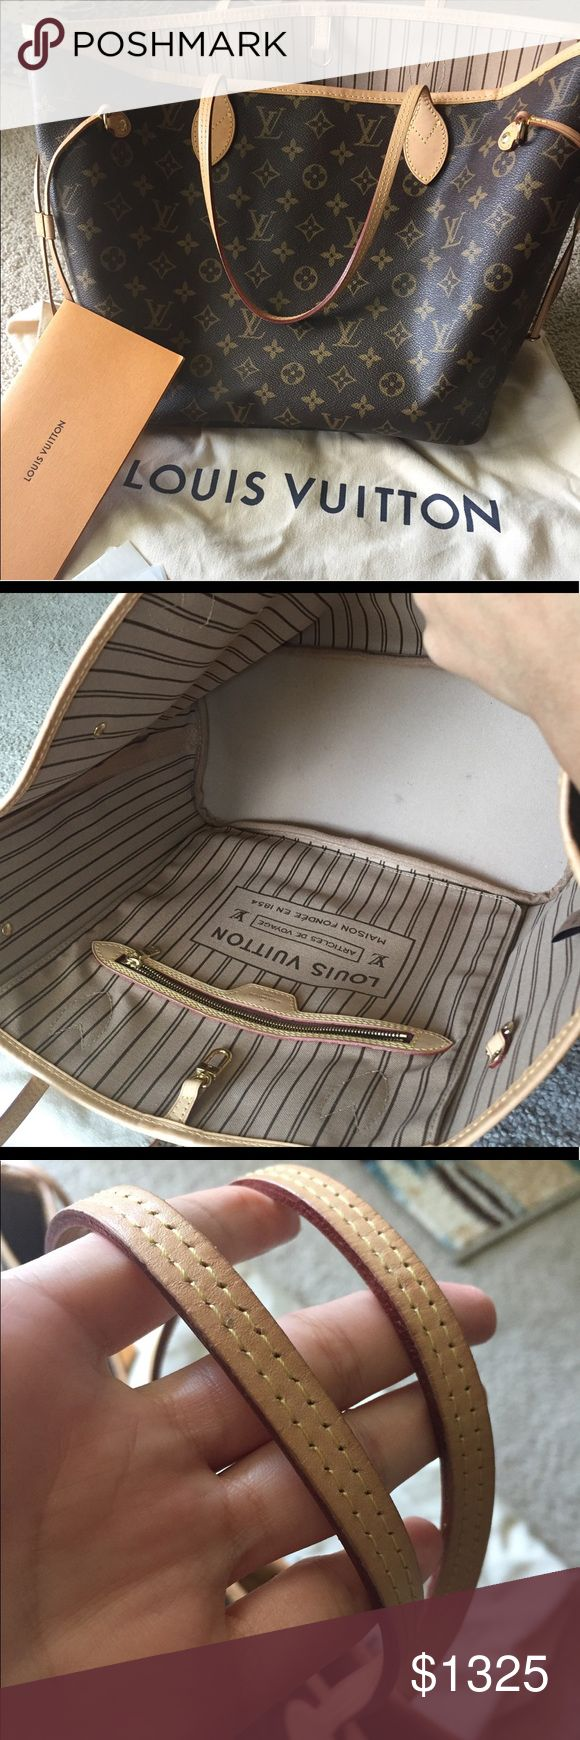 💕Louis Vuitton MM💕 💕authentic Luis Vuitton  bag 💕date code SD 3156 💕comes with dust bag and paperwork 💕used probably twice (my wallet got lost in it )🙈💕I bought it for myself but it's definitely too big for my lifestyle 🌸🔴no trades 🔴no worries it will go first to posh concierge 😘thanks Louis Vuitton Bags Totes